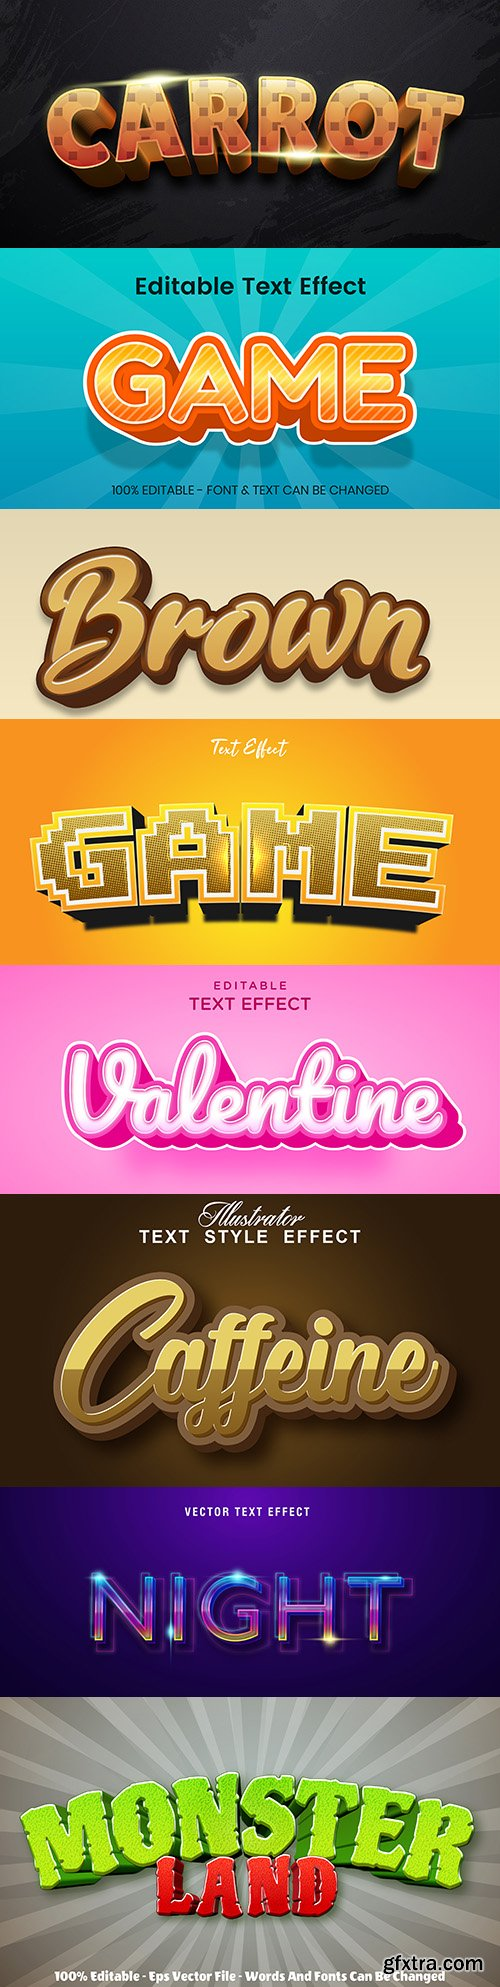 Editable font and 3d effect text design collection illustration 6